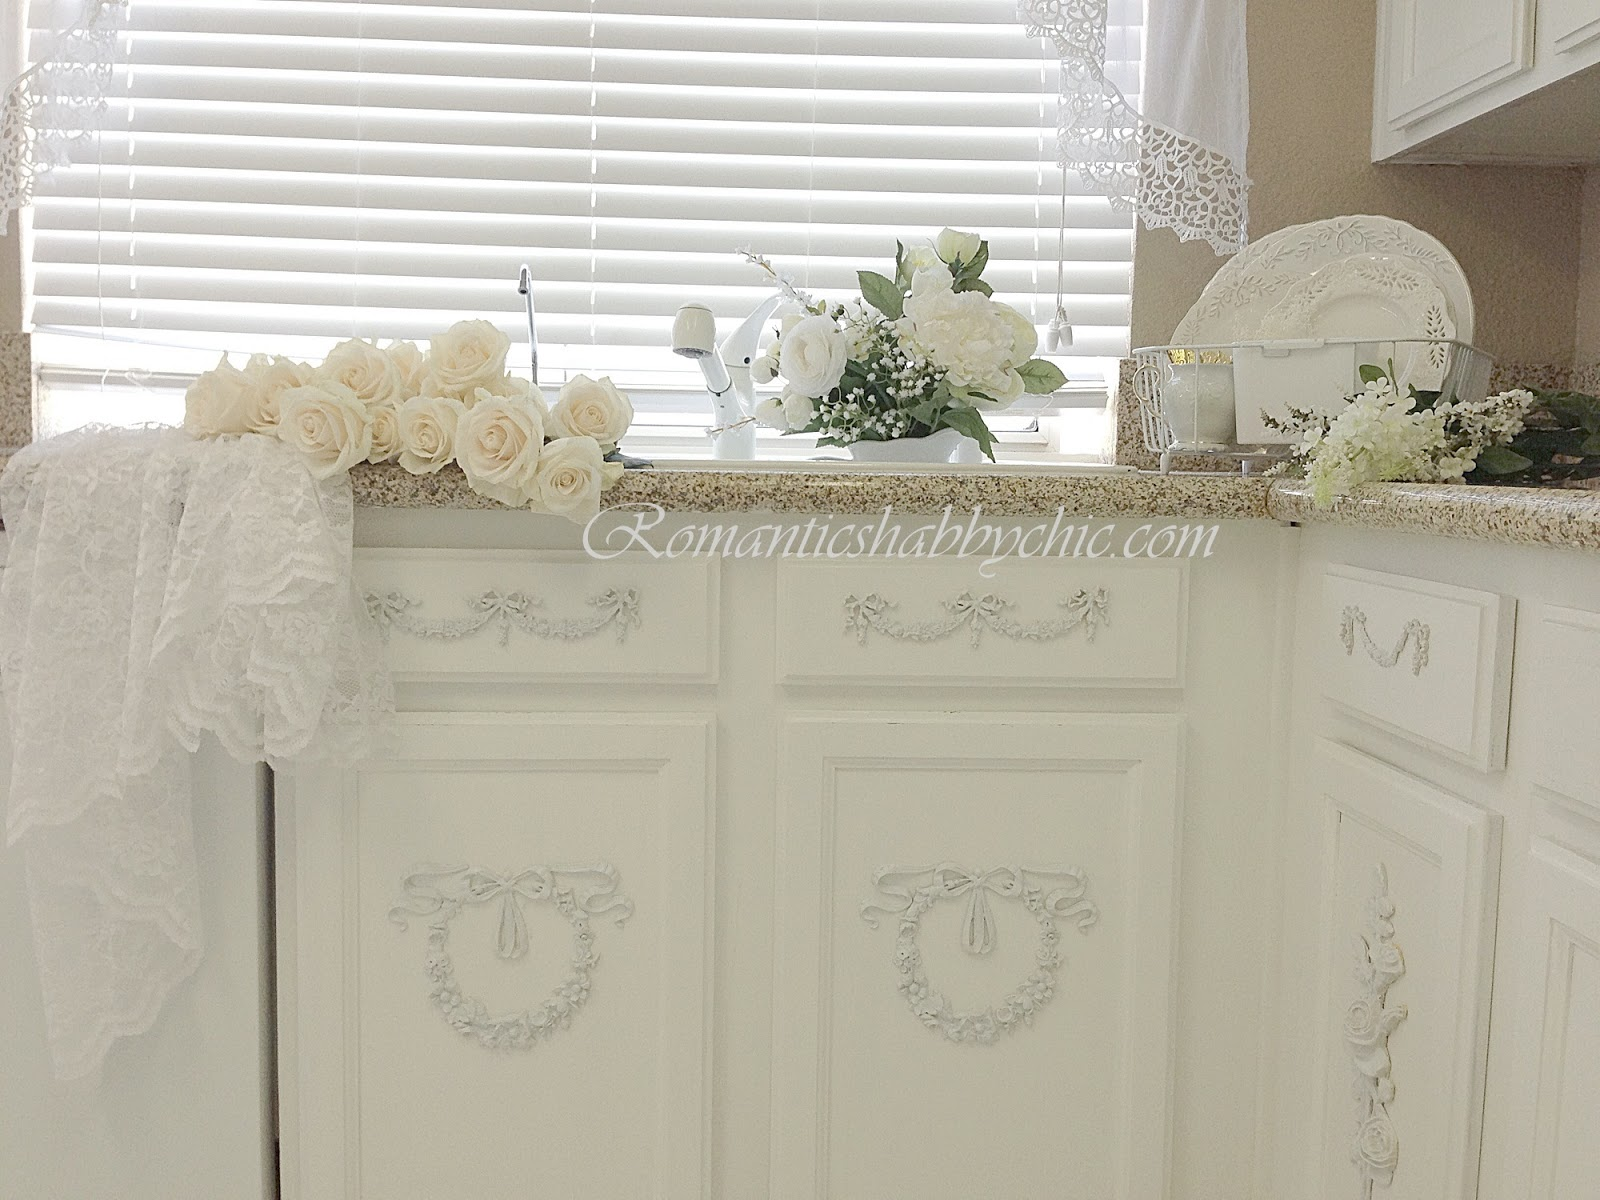 romantic shabby chic home romanticshabbychic com romantic shabby chic kitchen romantic white. Black Bedroom Furniture Sets. Home Design Ideas